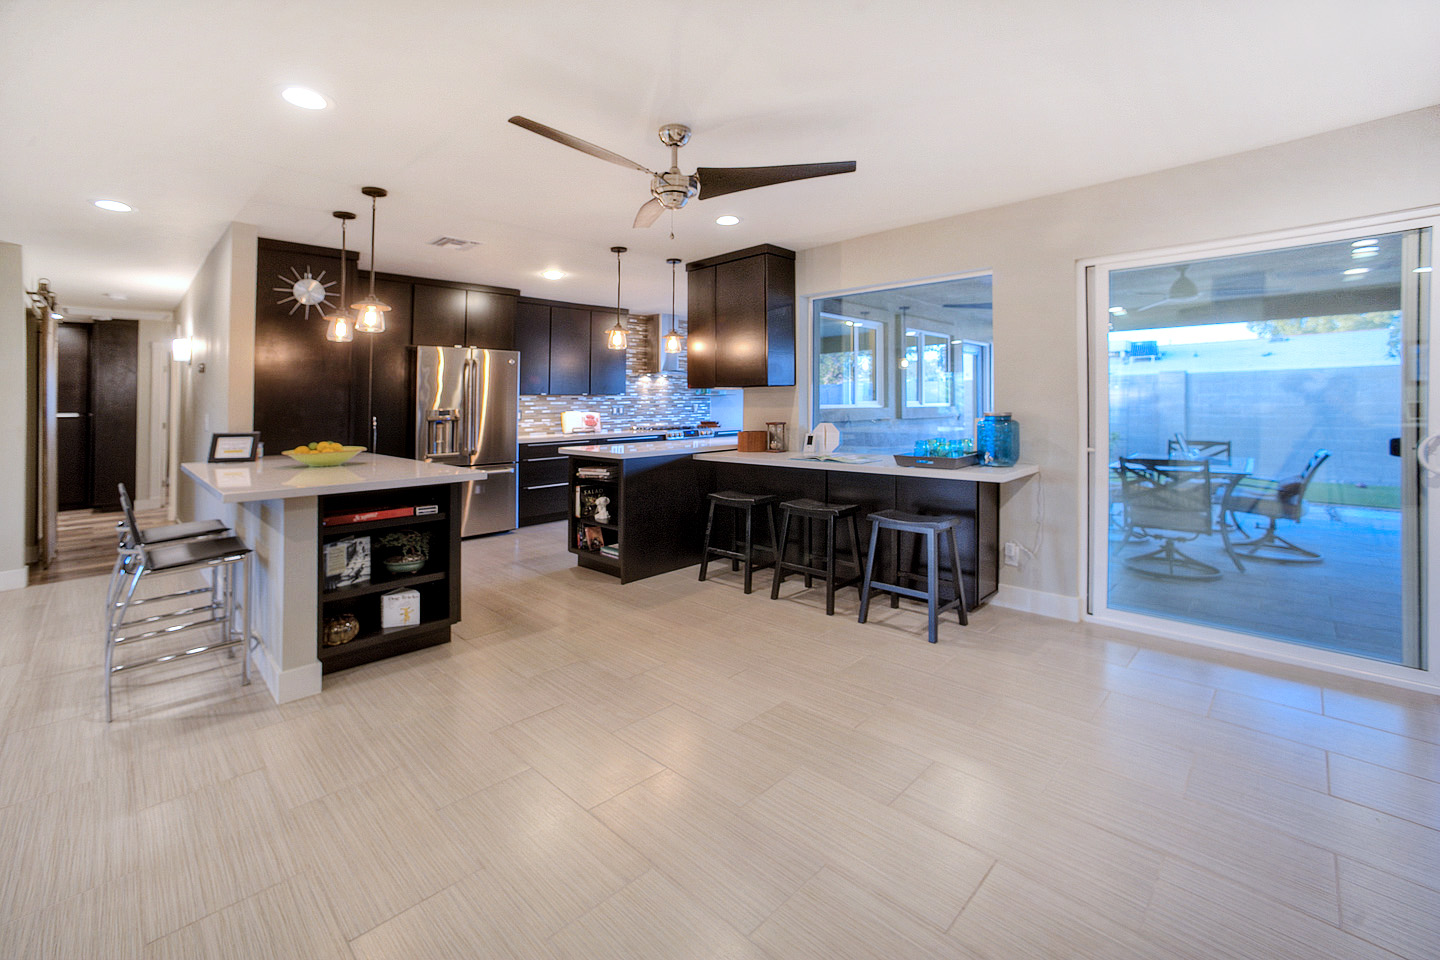 Open house green certified home south scottsdale for Green certified home